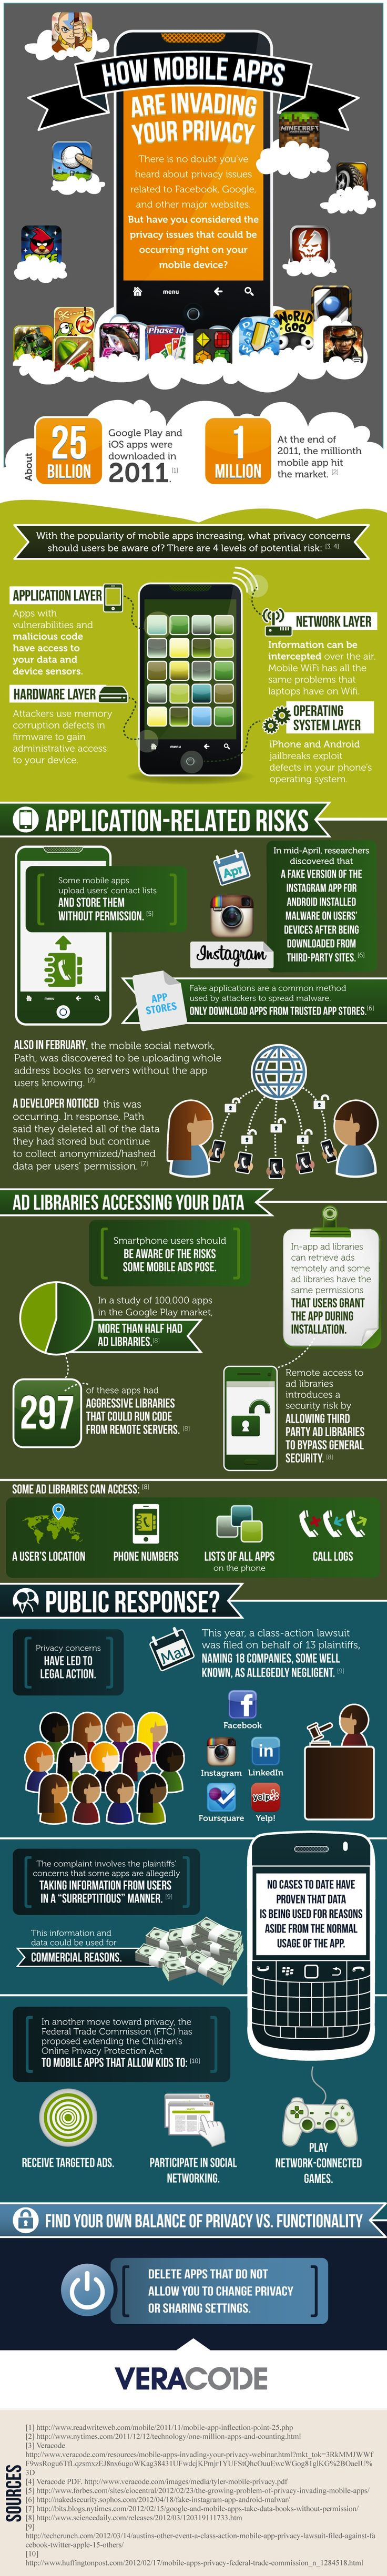 Can Your Mobile Apps Be Trusted?: App Invaders, Privacy Infographic, Website, Social Media, Las Aplicacion, Mobiles Application, Mobiles Security, Android App, Mobiles Marketing